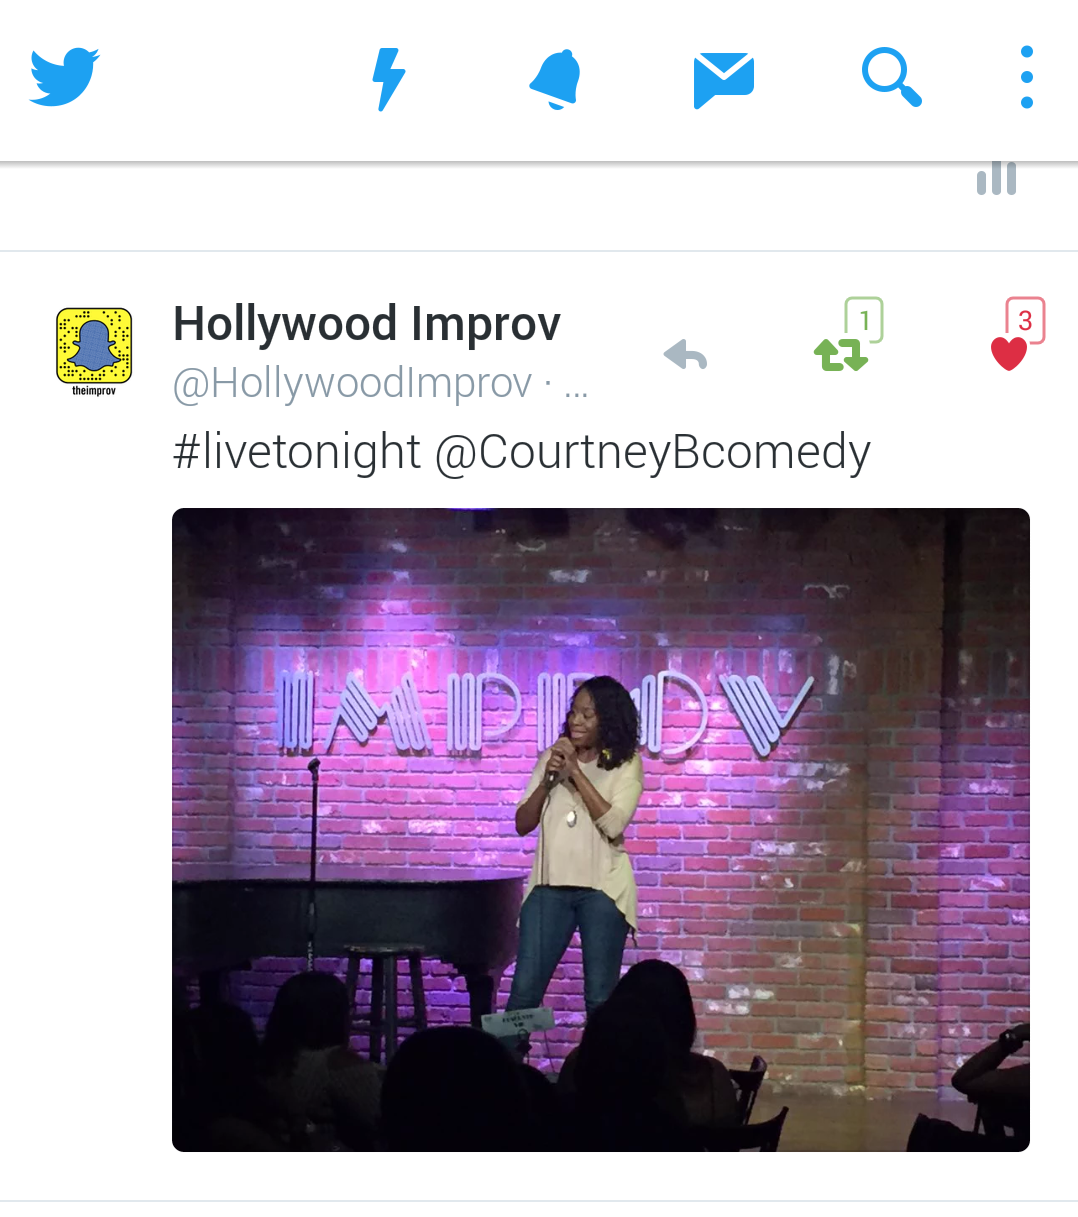 @HollywoodImprov tweet....